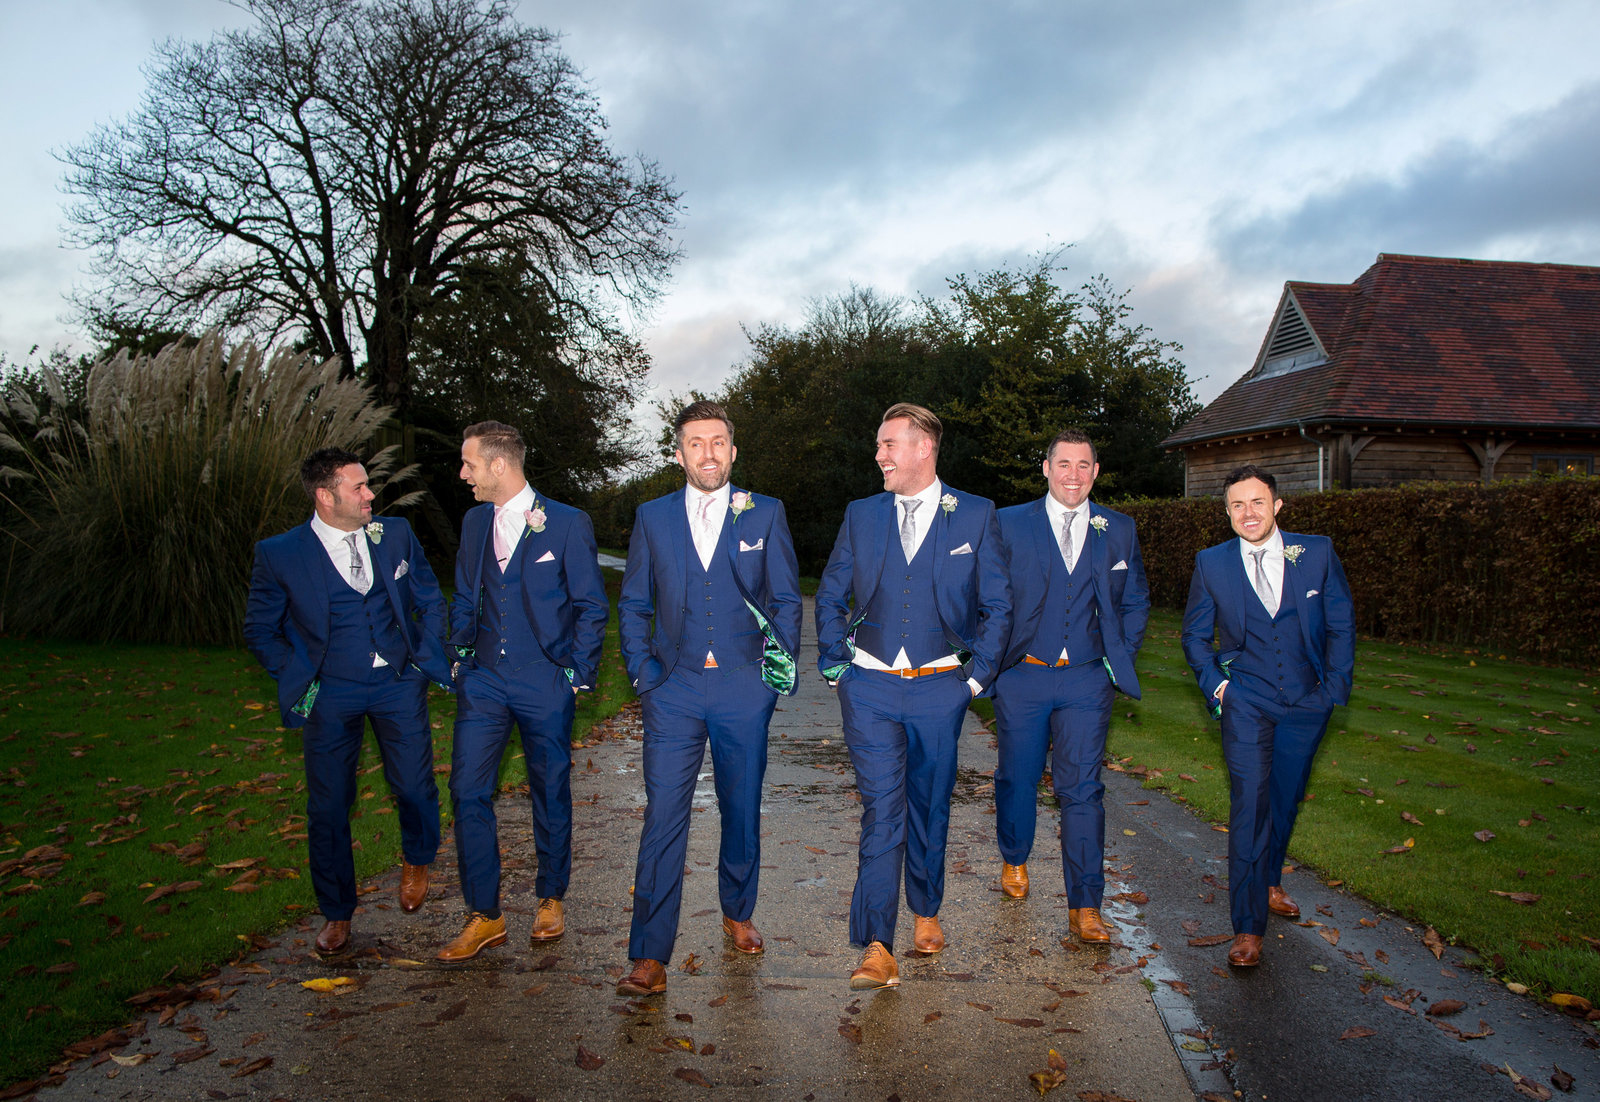 adorlee-0830-southend-barns-wedding-photographer-chichester-west-sussex